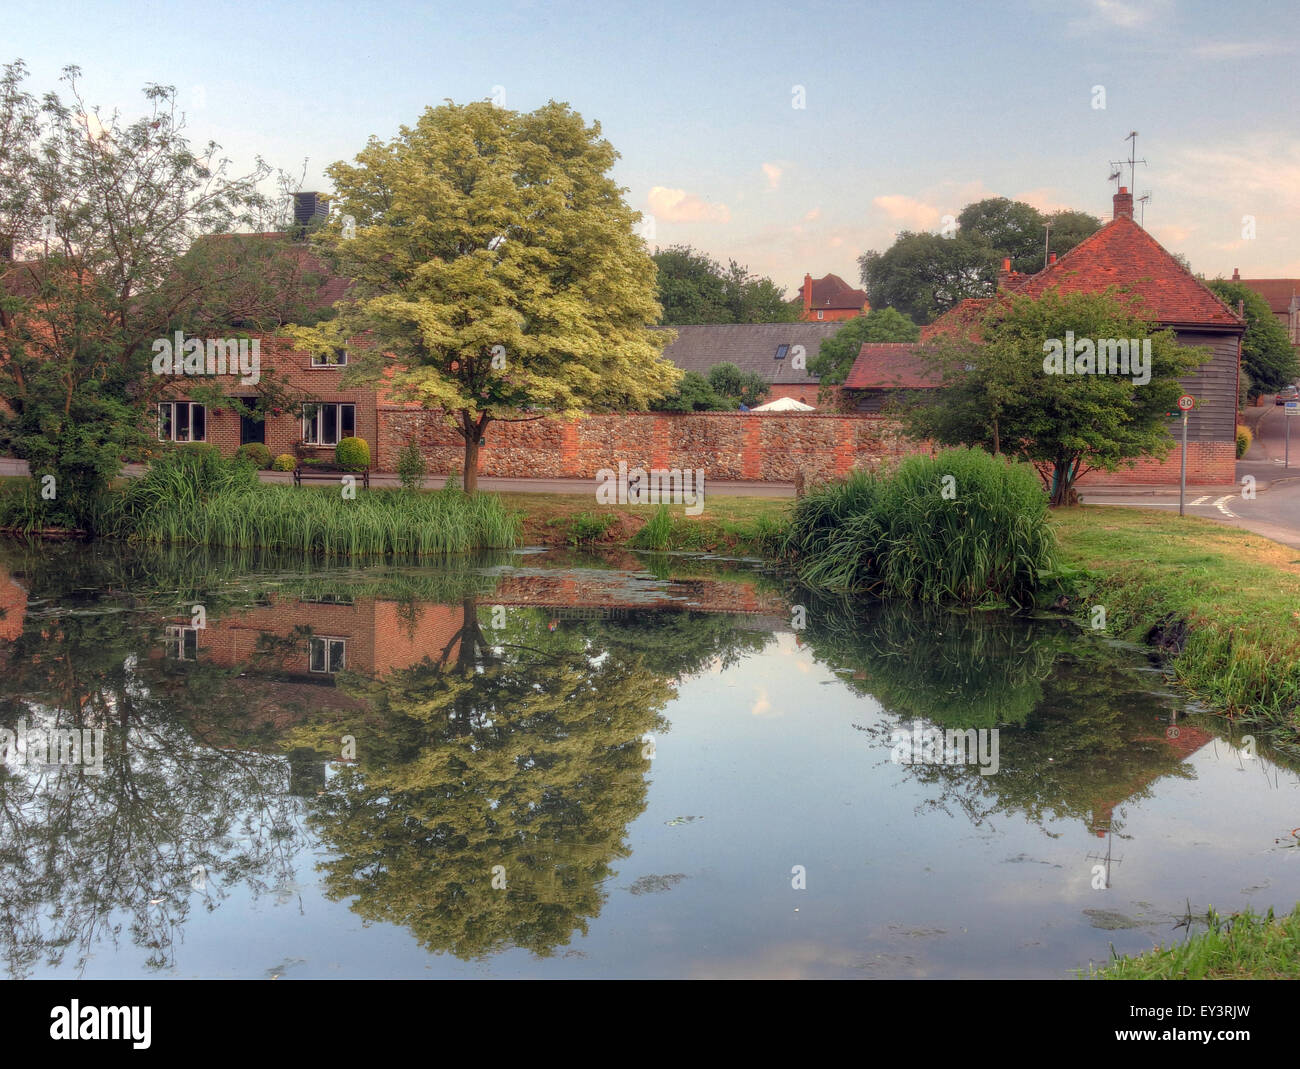 The pond, East Ilsley,West Berkshire,England,UK - Stock Image